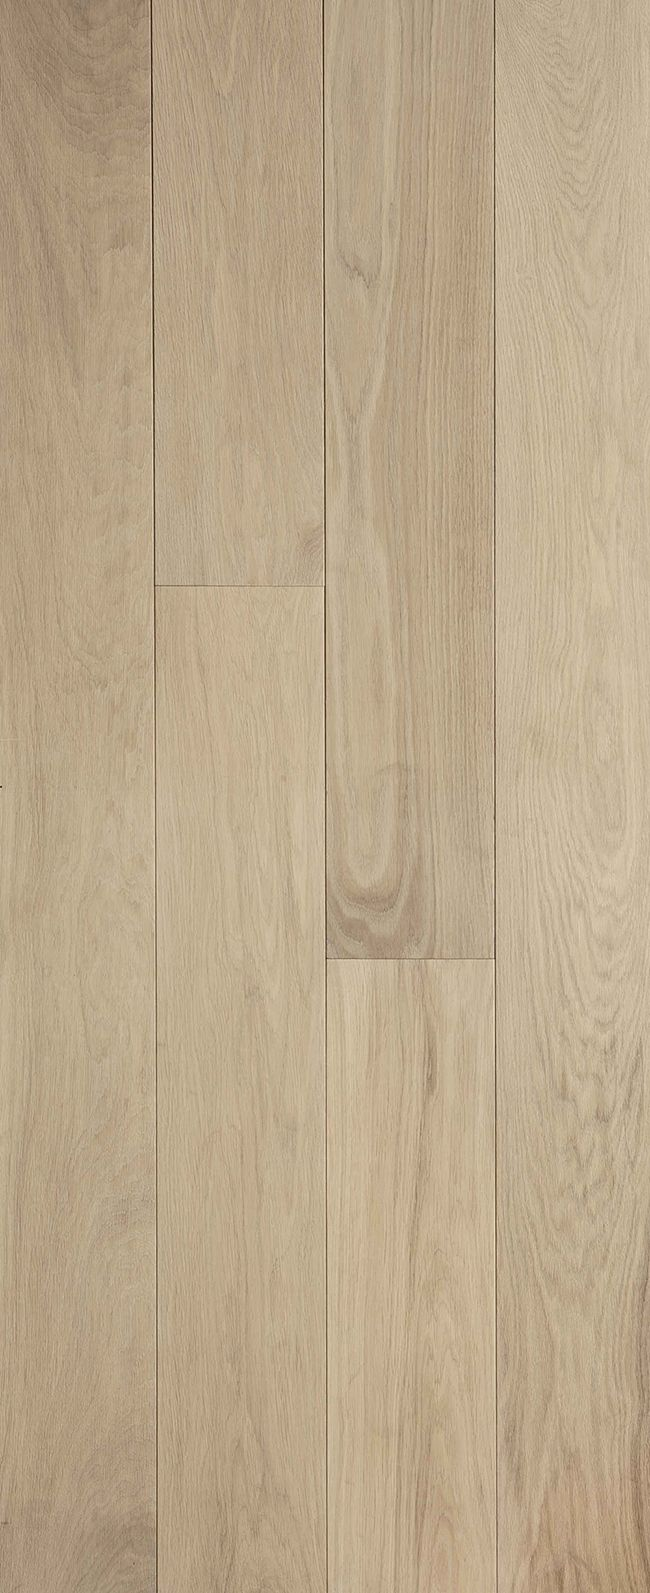 latte engineered prime oak textures pinterest latte. Black Bedroom Furniture Sets. Home Design Ideas